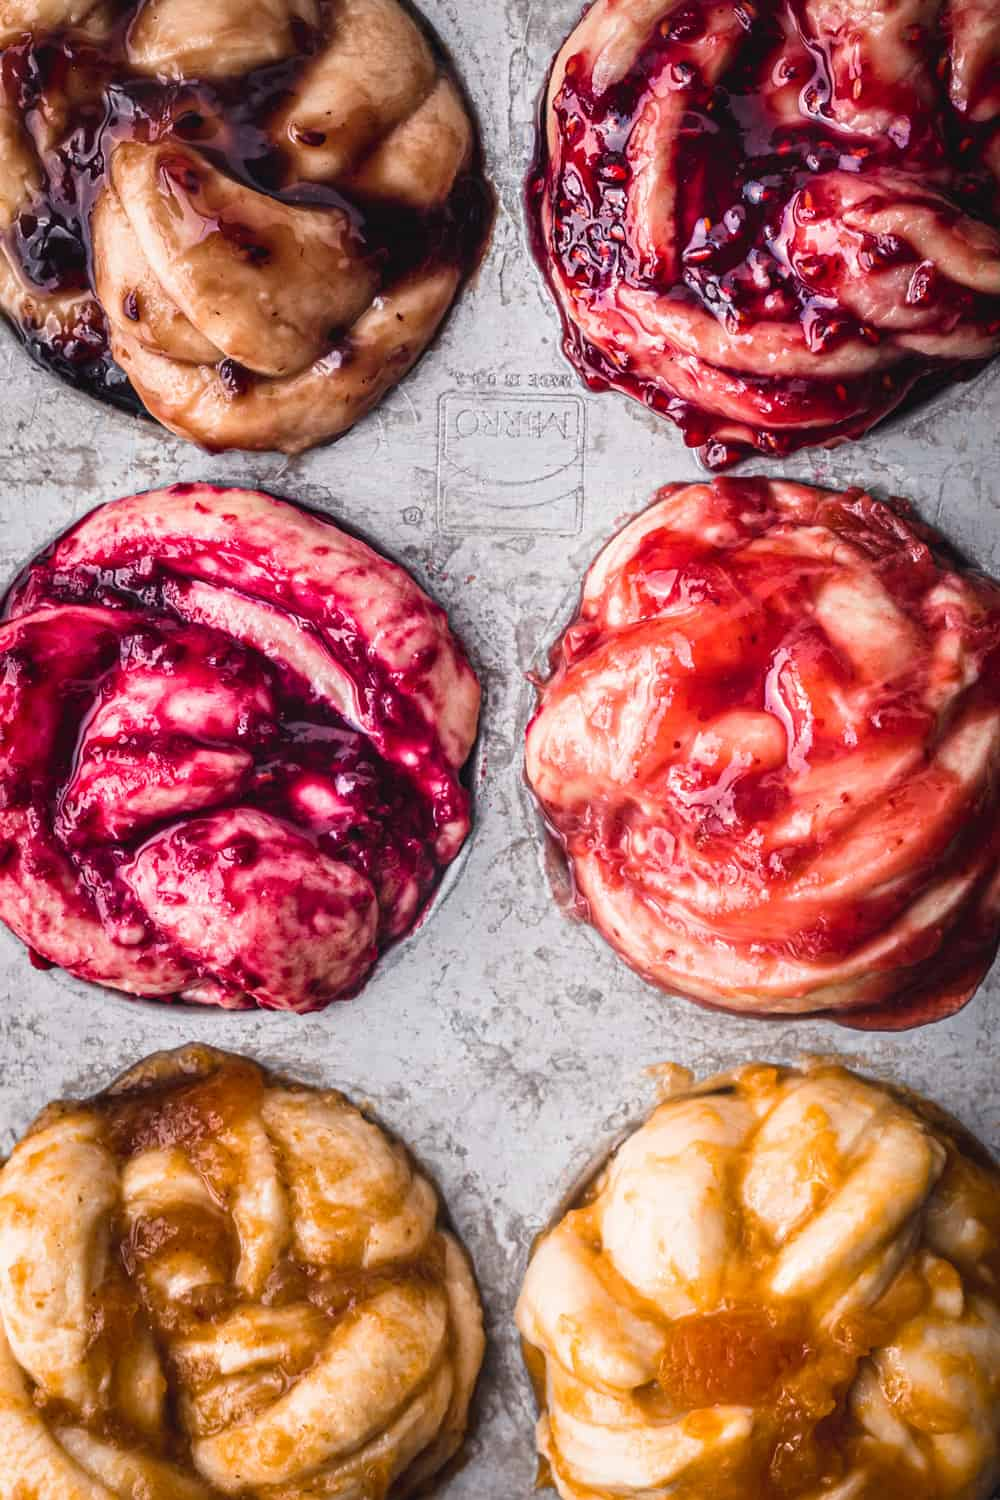 Challah Babka Buns, with all different colors of jam, pre-oven, in a silver muffin tin; overhead shot.